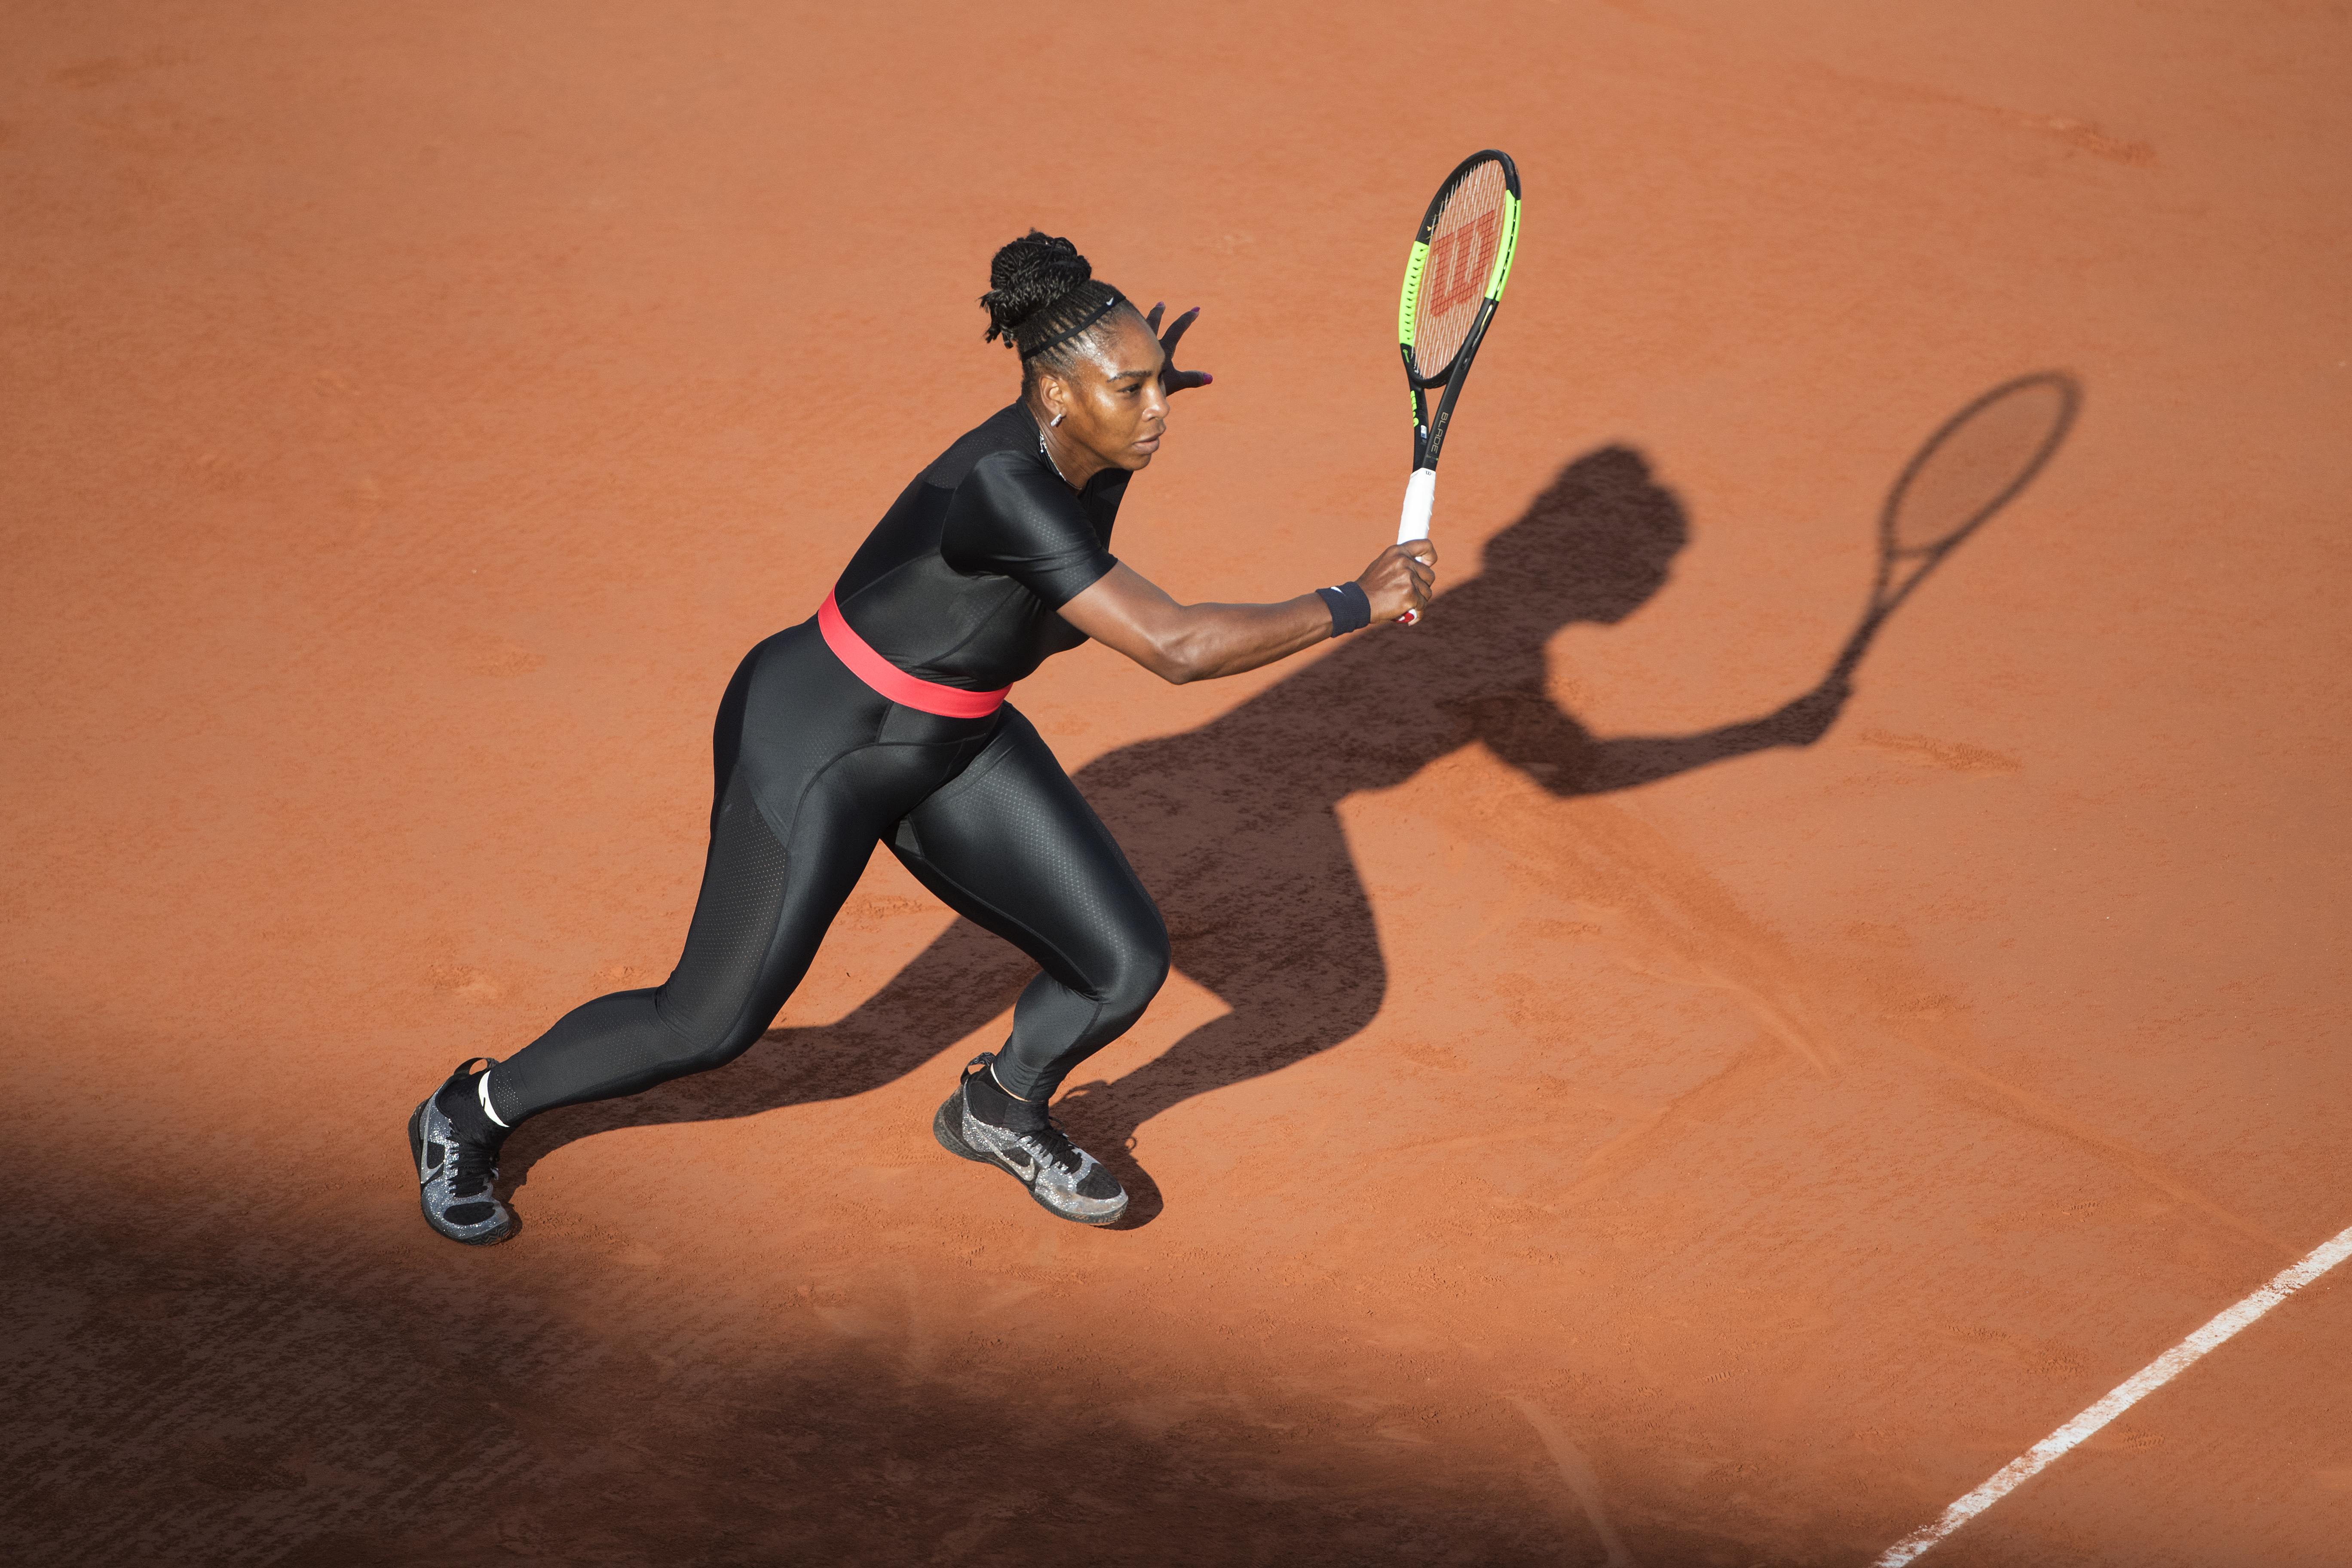 Serena Williams in bodysuit at 2018 French Open Tennis Tournament